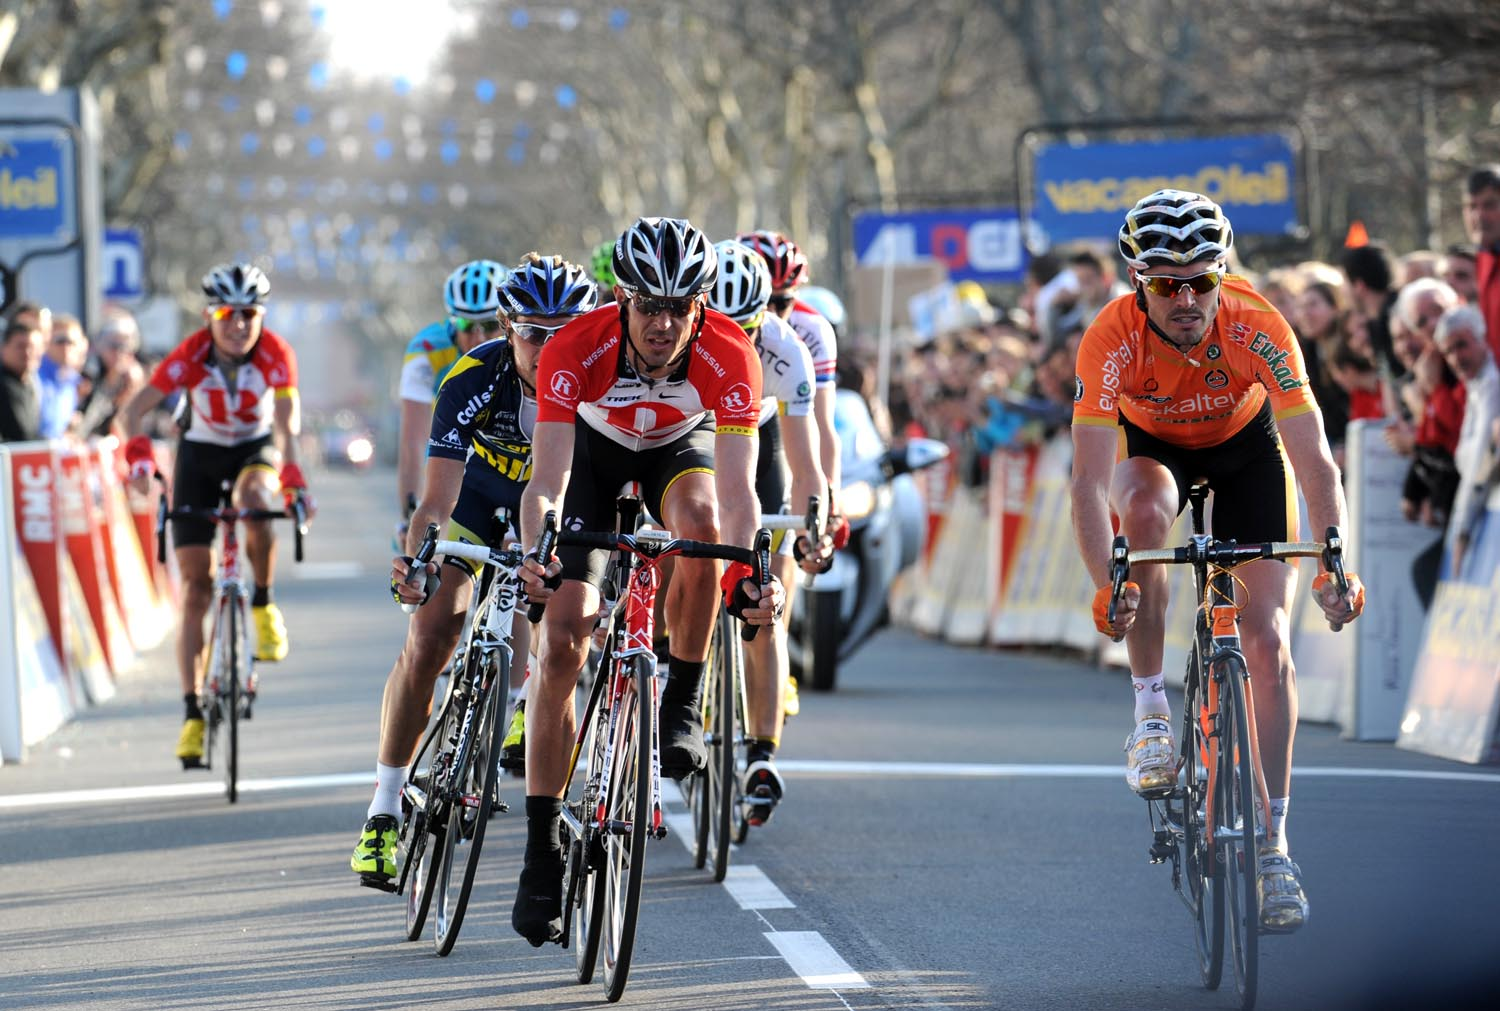 Andreas Kloden wins and takes race lead, Paris-Nice 2011, stage five